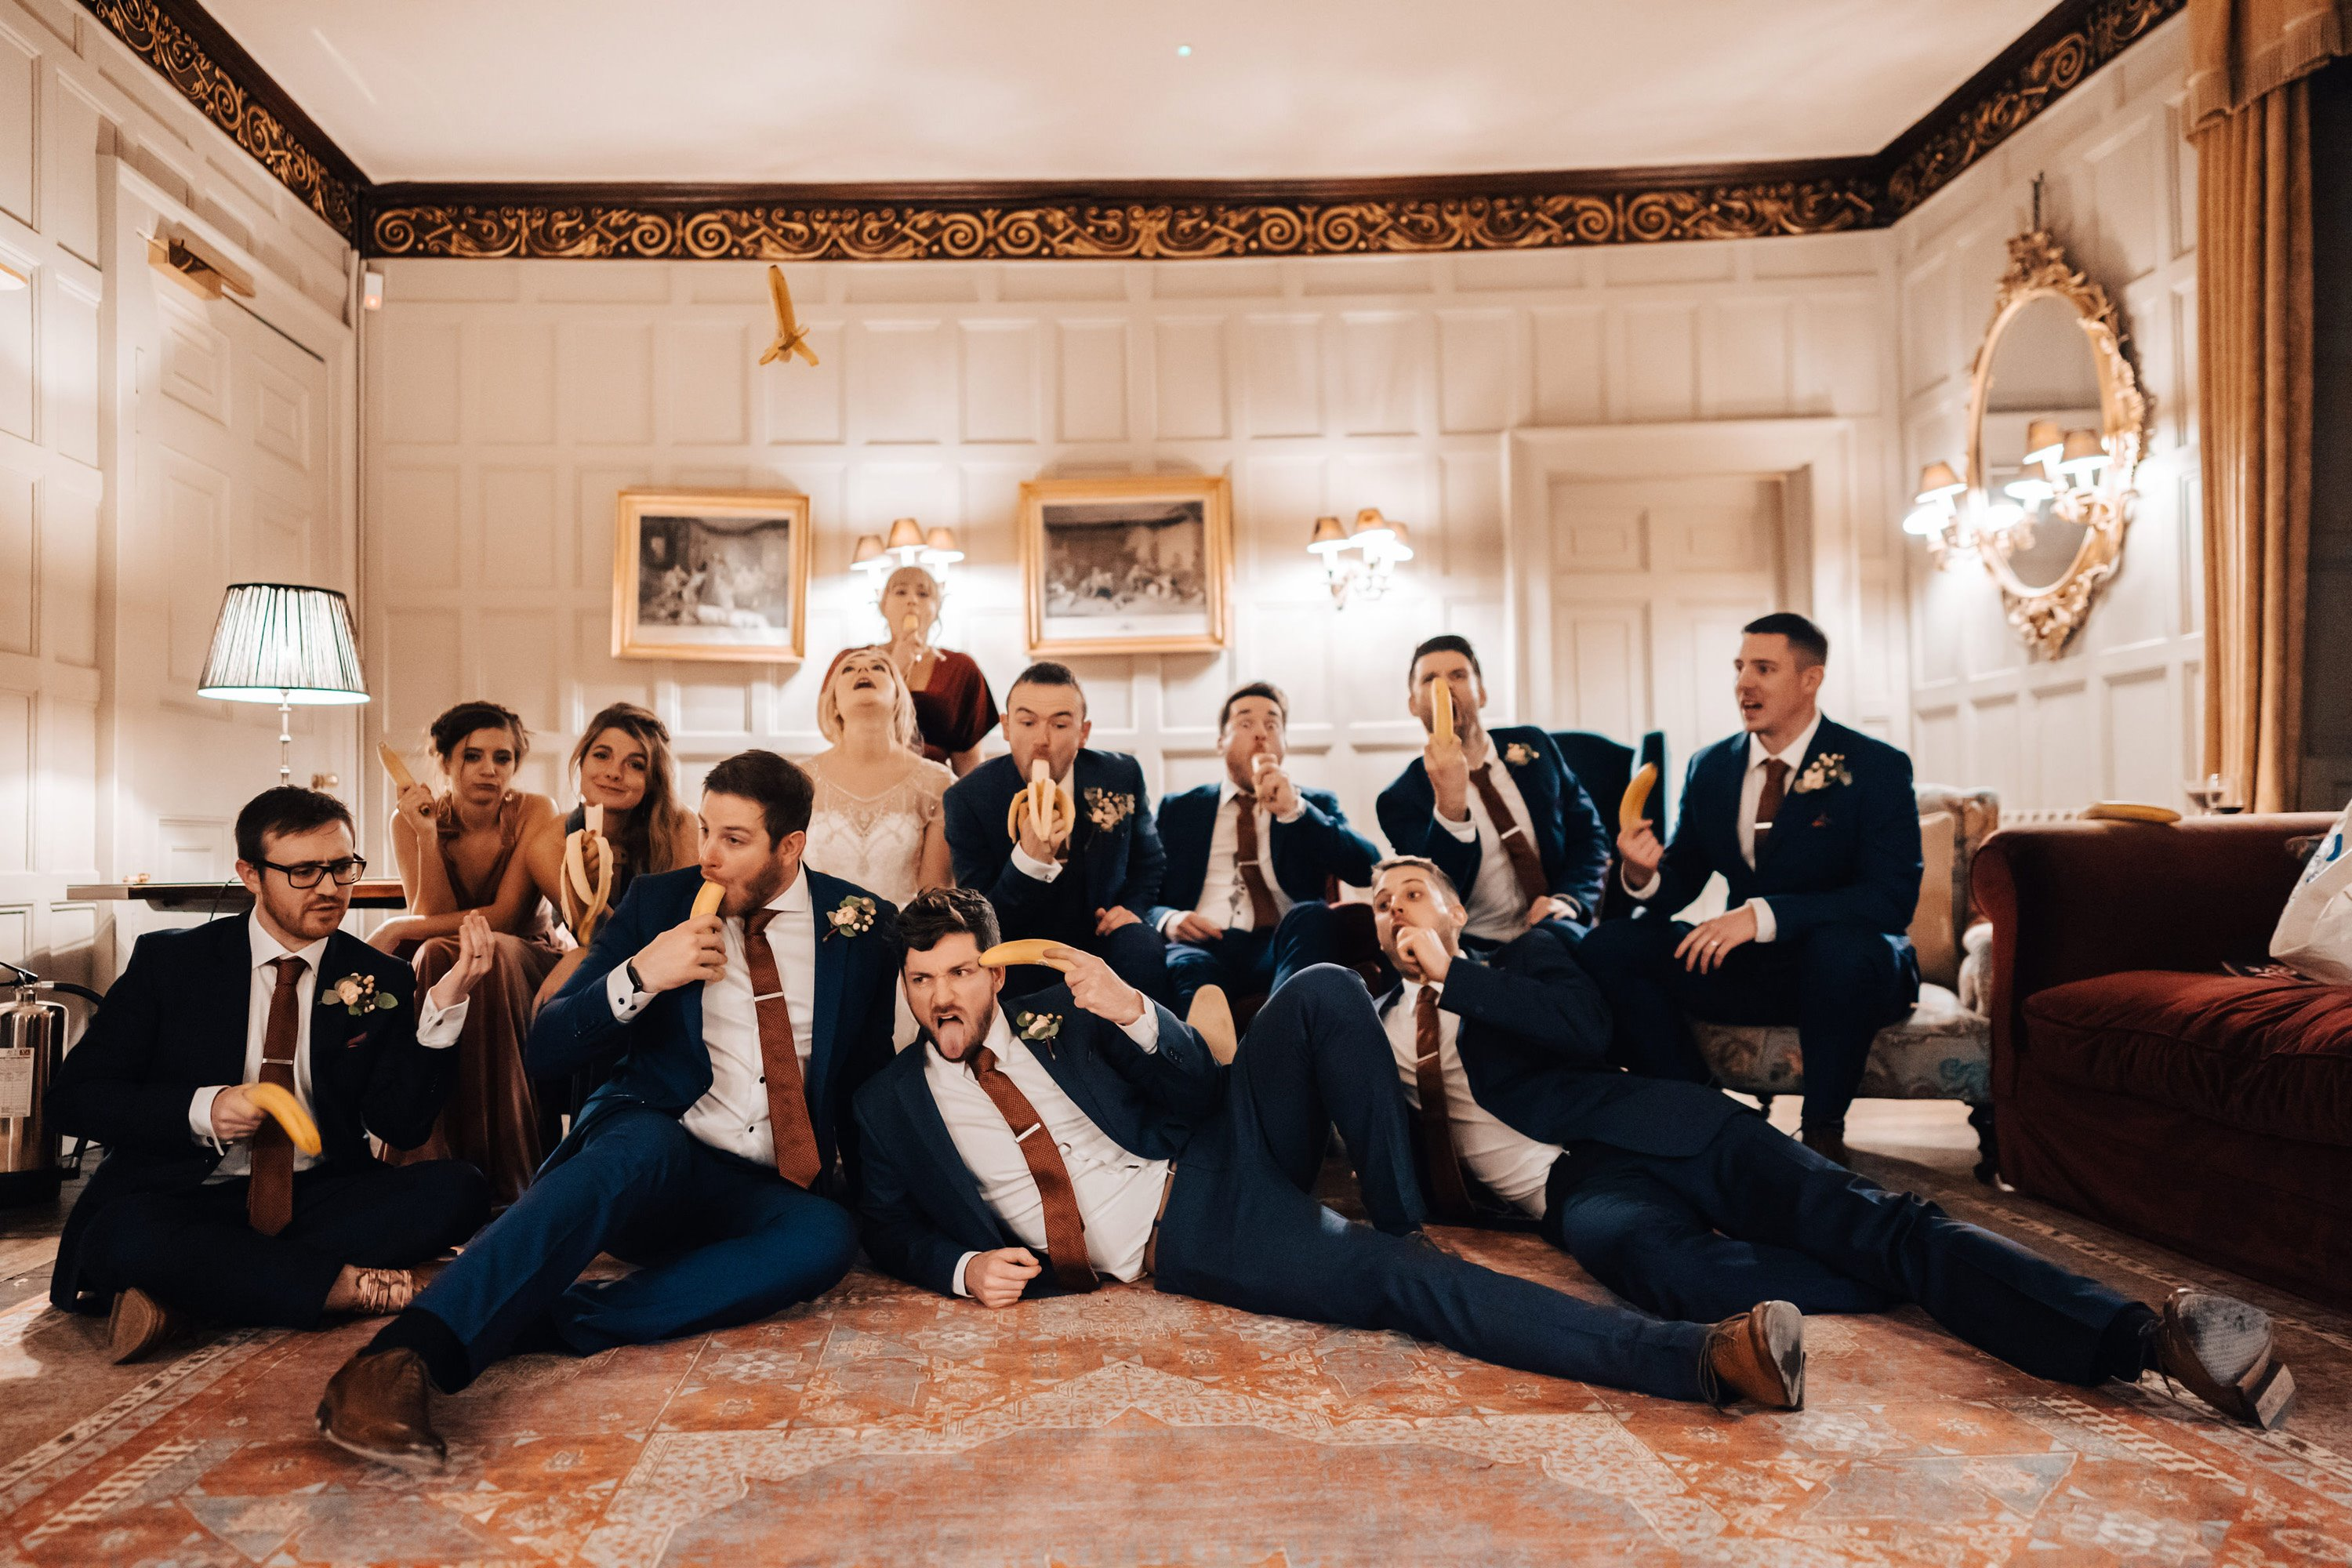 Fun indoor group shot wedding photography, when you can't go outside, get creative